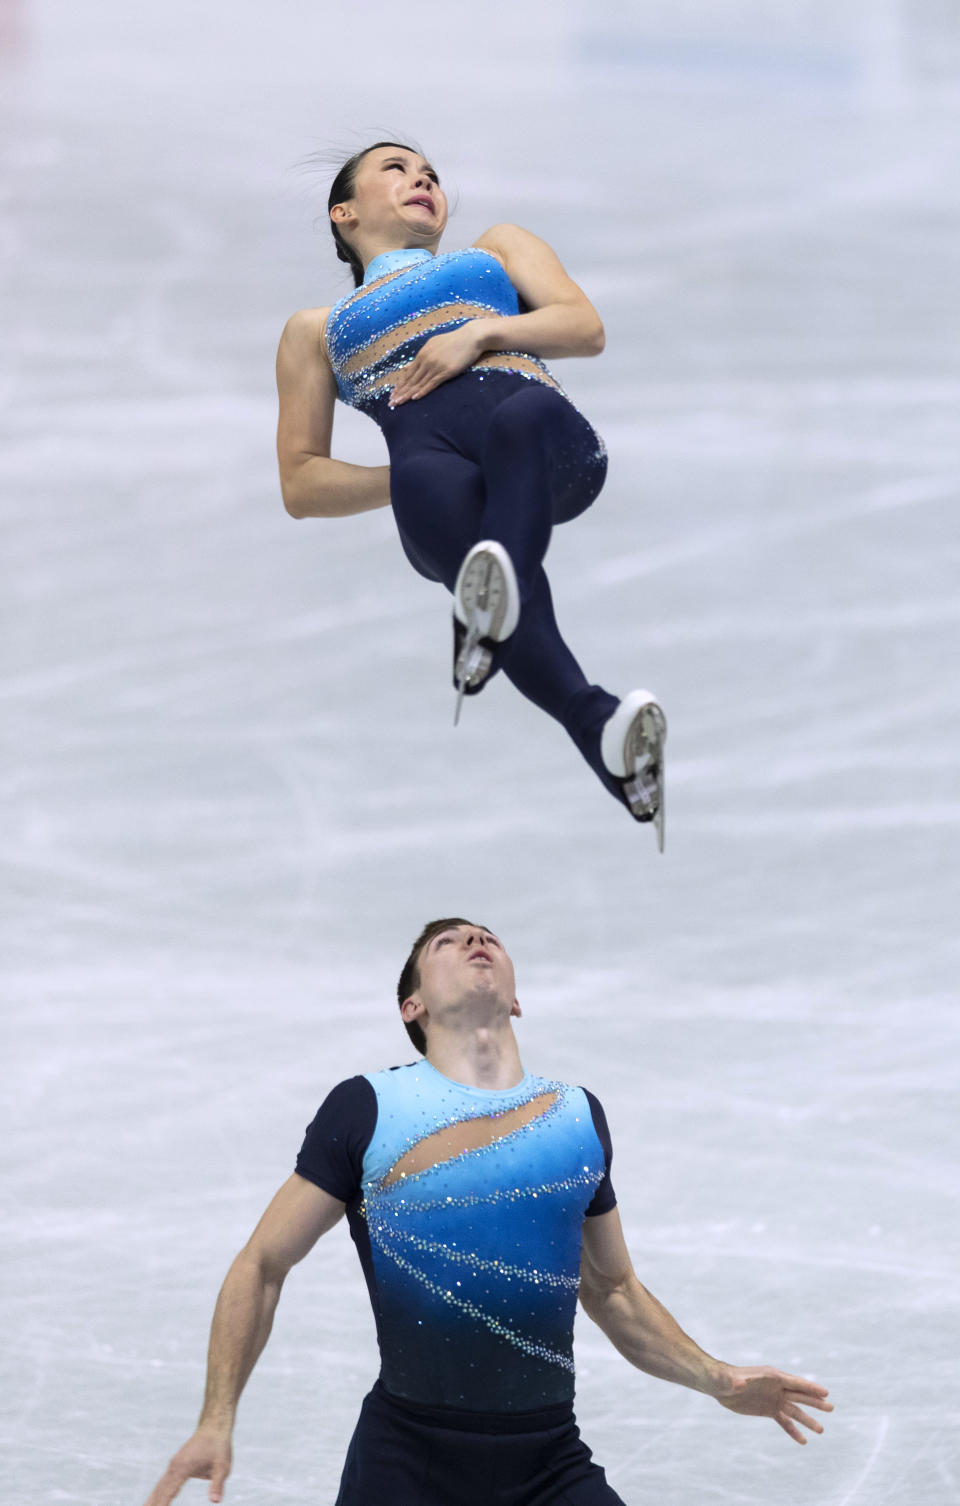 Canada's Lori-Ann Matte and Thierry Ferland perform during the pairs short program of the ISU World Team Trophy figure skating competition in Osaka, western Japan, Friday, April 16, 2021. (AP Photo/Hiro Komae)